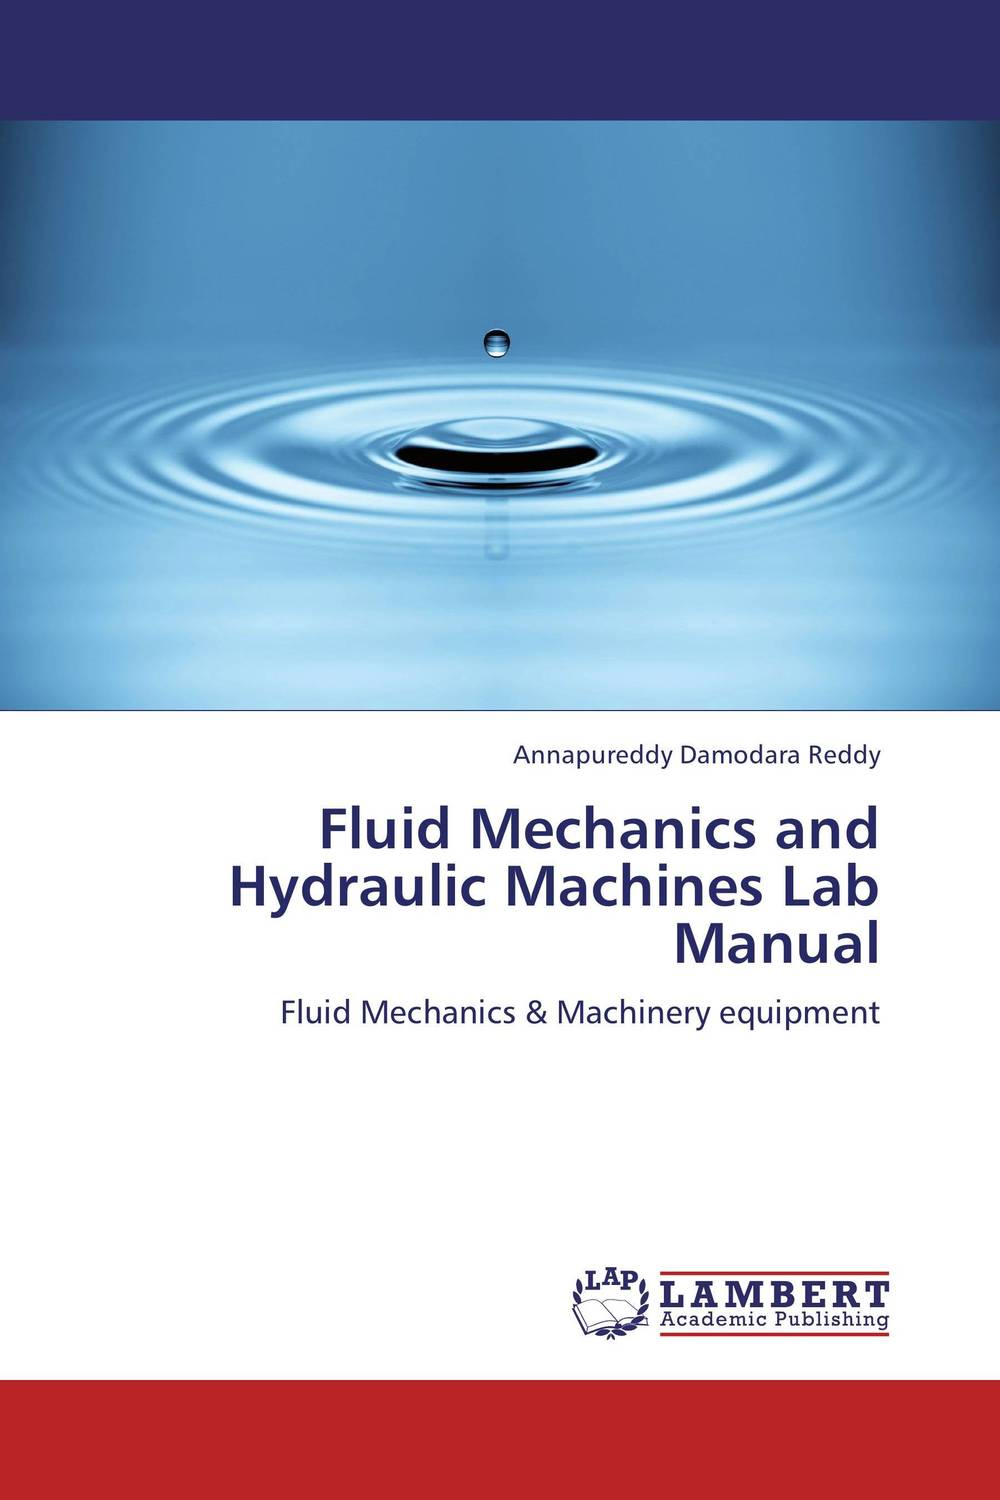 Fluid Mechanics and Hydraulic Machines Lab Manual crusade vol 3 the master of machines